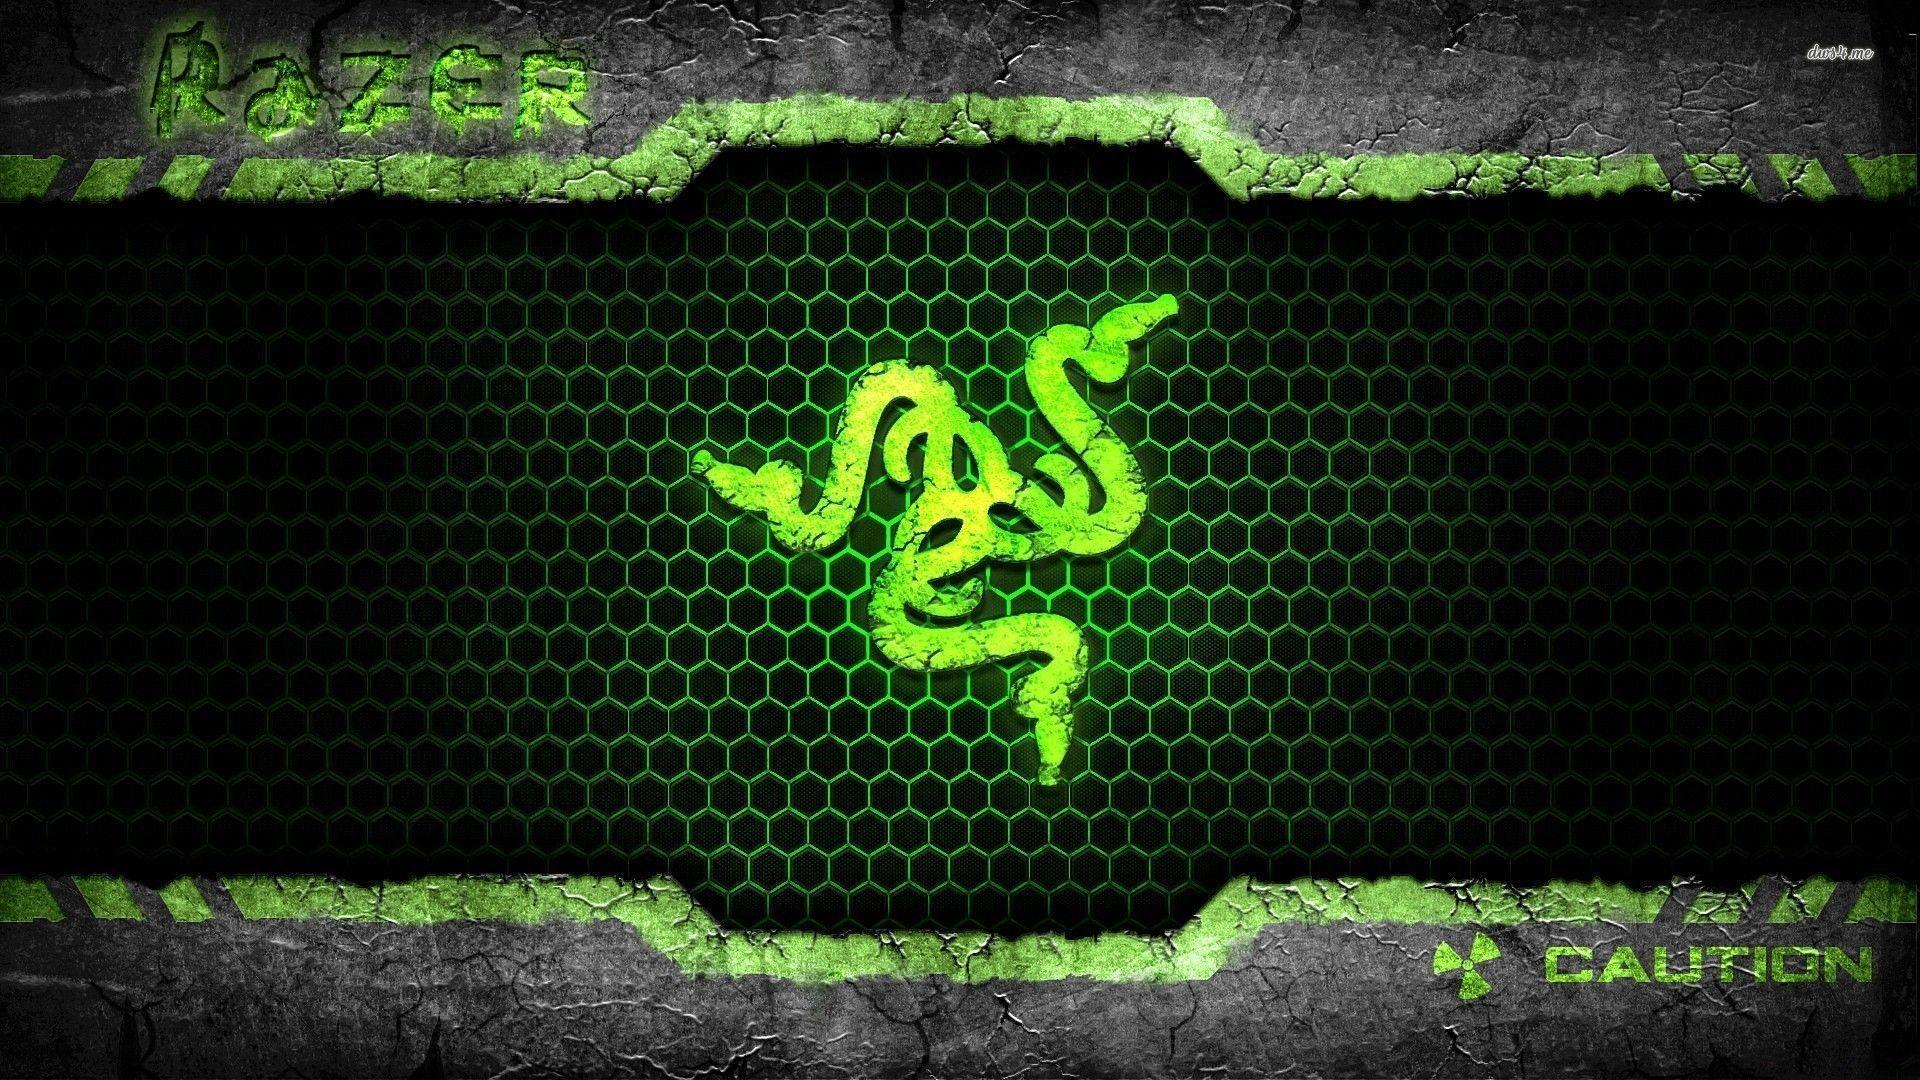 Wallpapers For Razer Wallpaper 1920x1080 3d